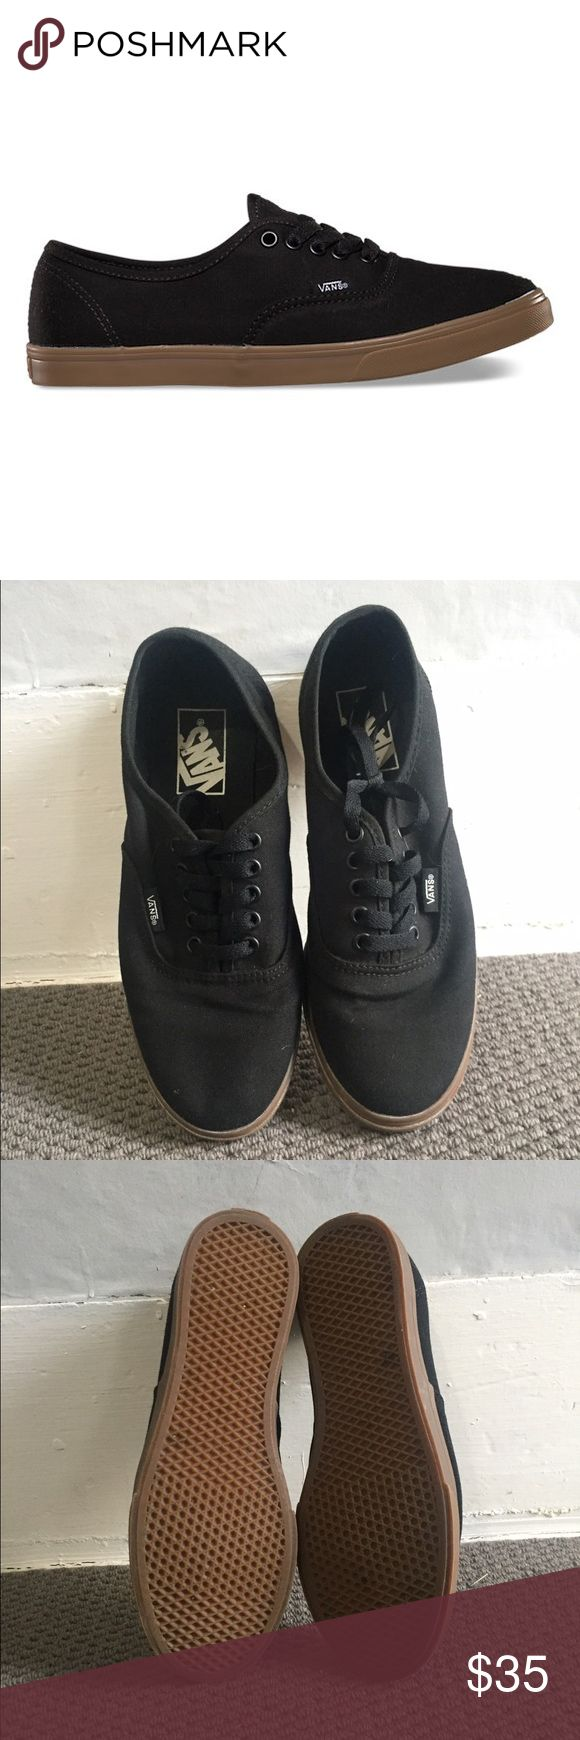 ☠️Black Thin Soled Vans☠️ Black thin soled vans with gum sole. Worn once, can see usage in the picture. READ INFO BELOW!!! No trades, all sales are final.   Always willing to negotiate prices, make me an offer!   Bundles of 3 or more are 10% off!!!   I ship between 2-3 days based on my work/ school schedule and the lack of a home printer.  All items come from a smoke free home!   Feel free to ask anymore questions you have(: Vans Shoes Sneakers